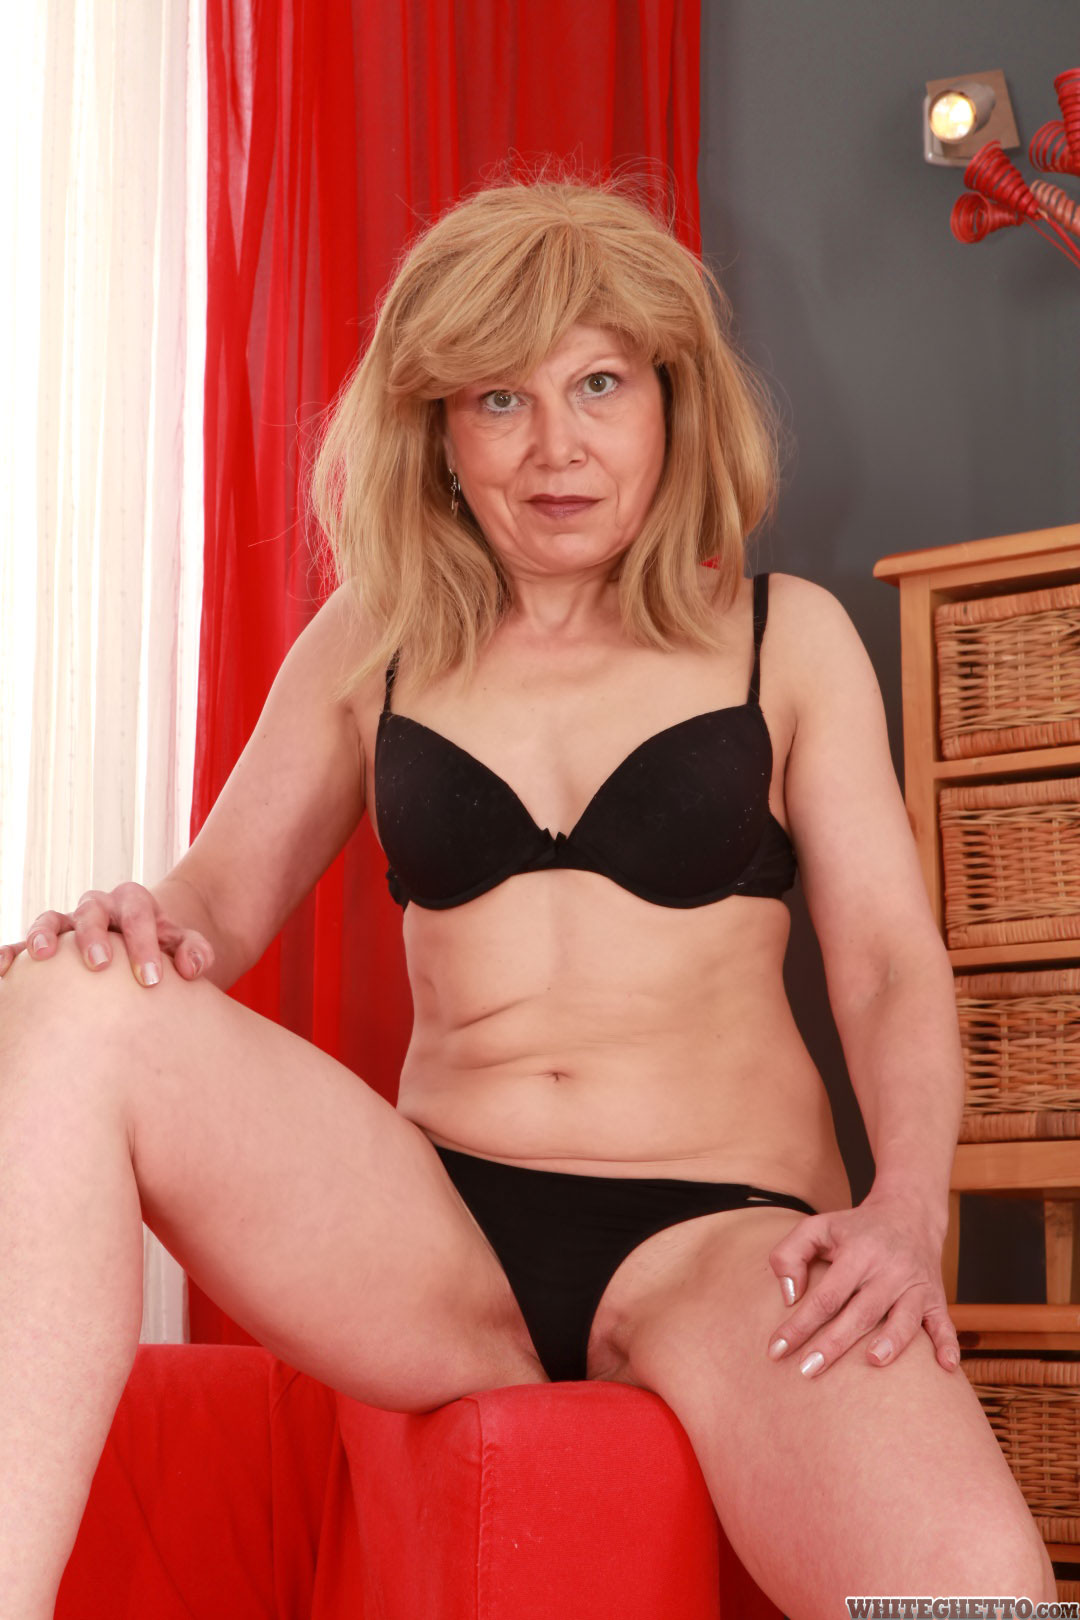 sxx pic teasers 8 80 8014 4d4d604797 non nude 01 8014 15